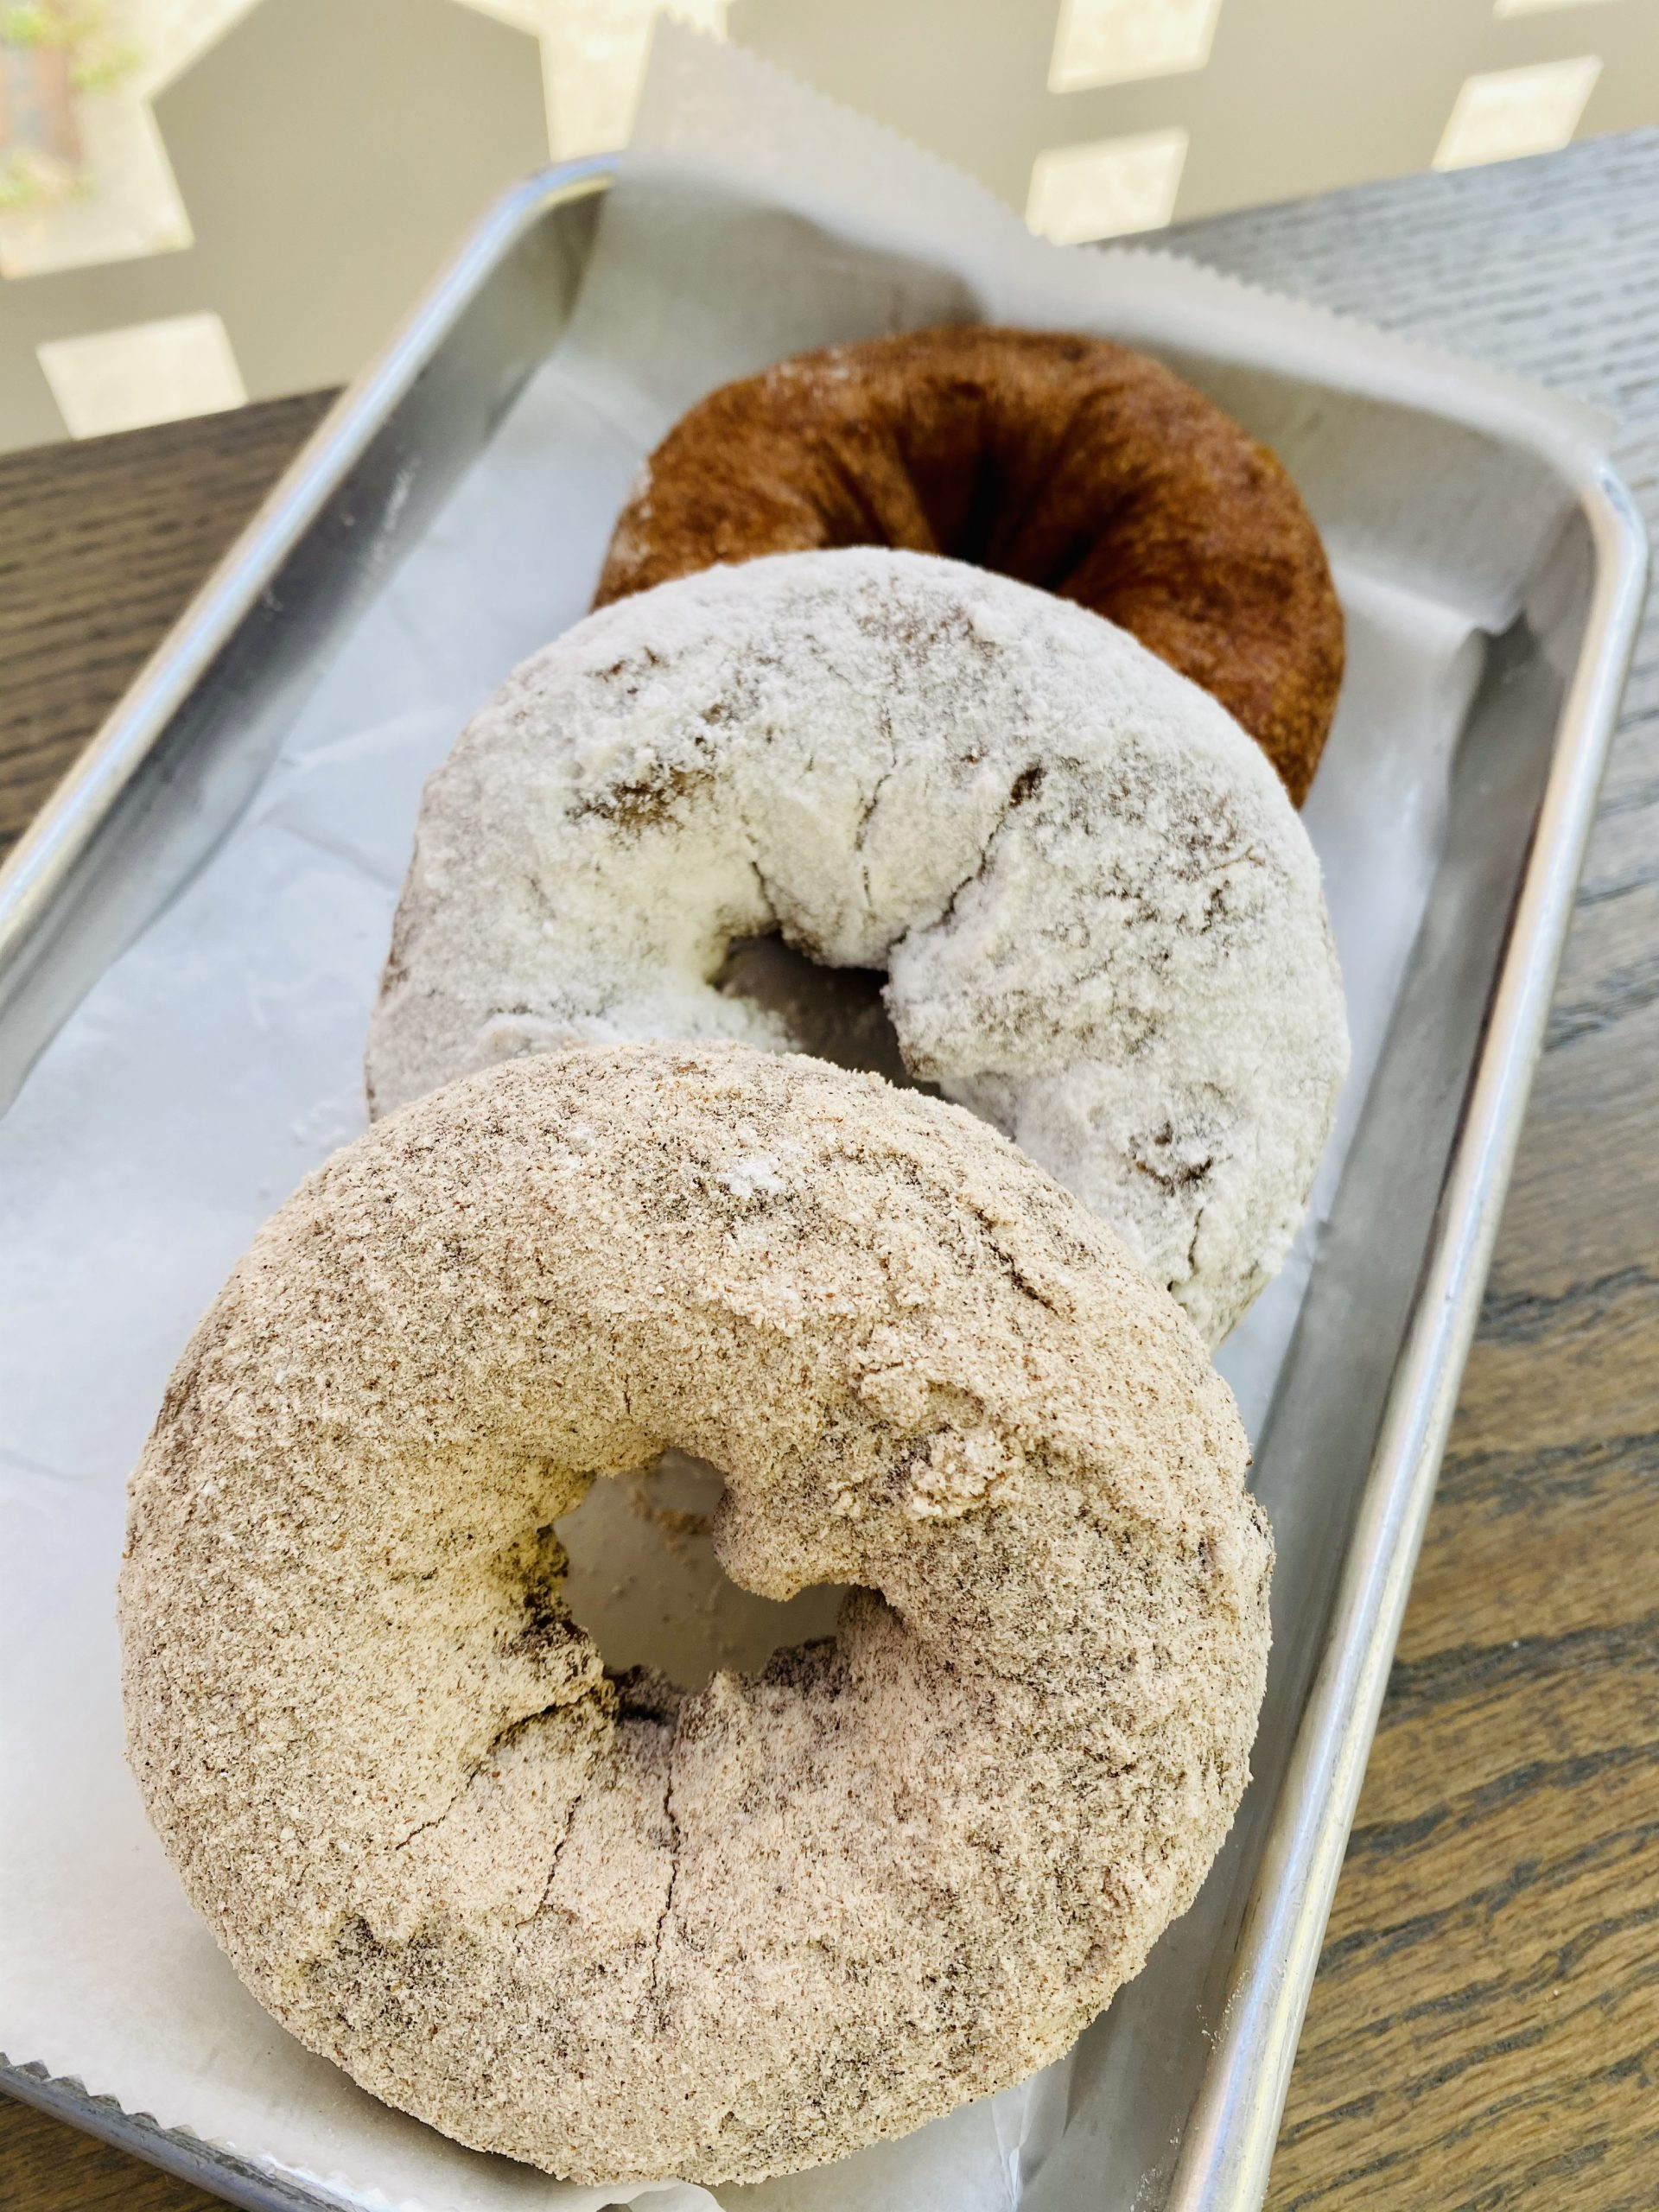 Apple Cider Donuts-12 donuts- 4 cinnamon, 4 powder  and 4 plain